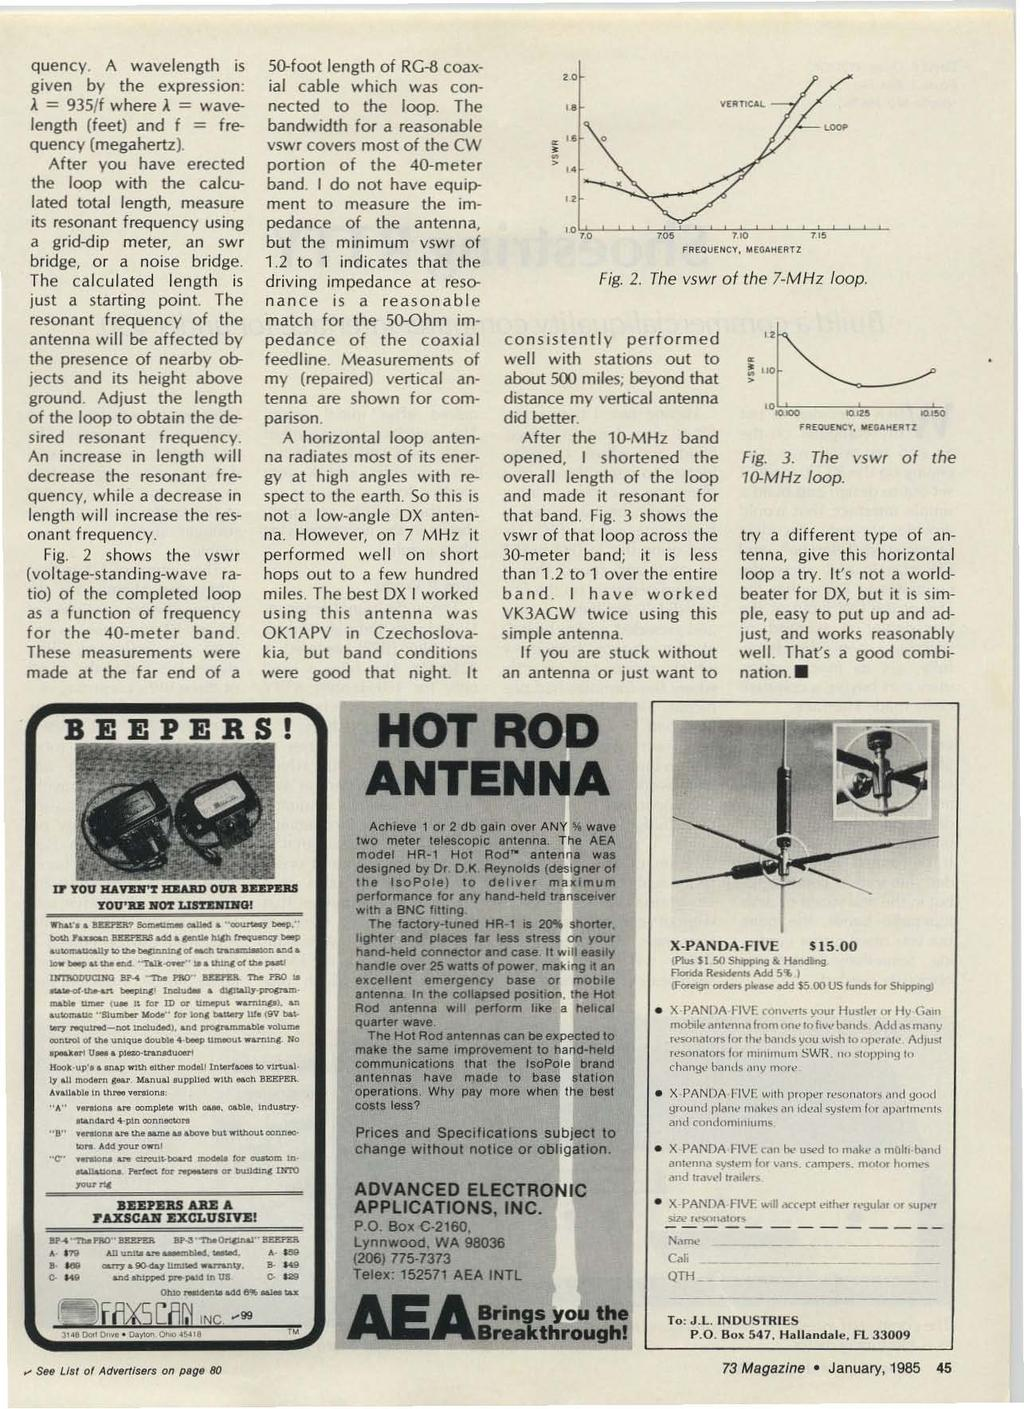 Amateur Radios Technical Journal Pdf Xl Data Hodrod Rp 50000 Quency A Wavelength Is Give N By The Expressionl 935ff